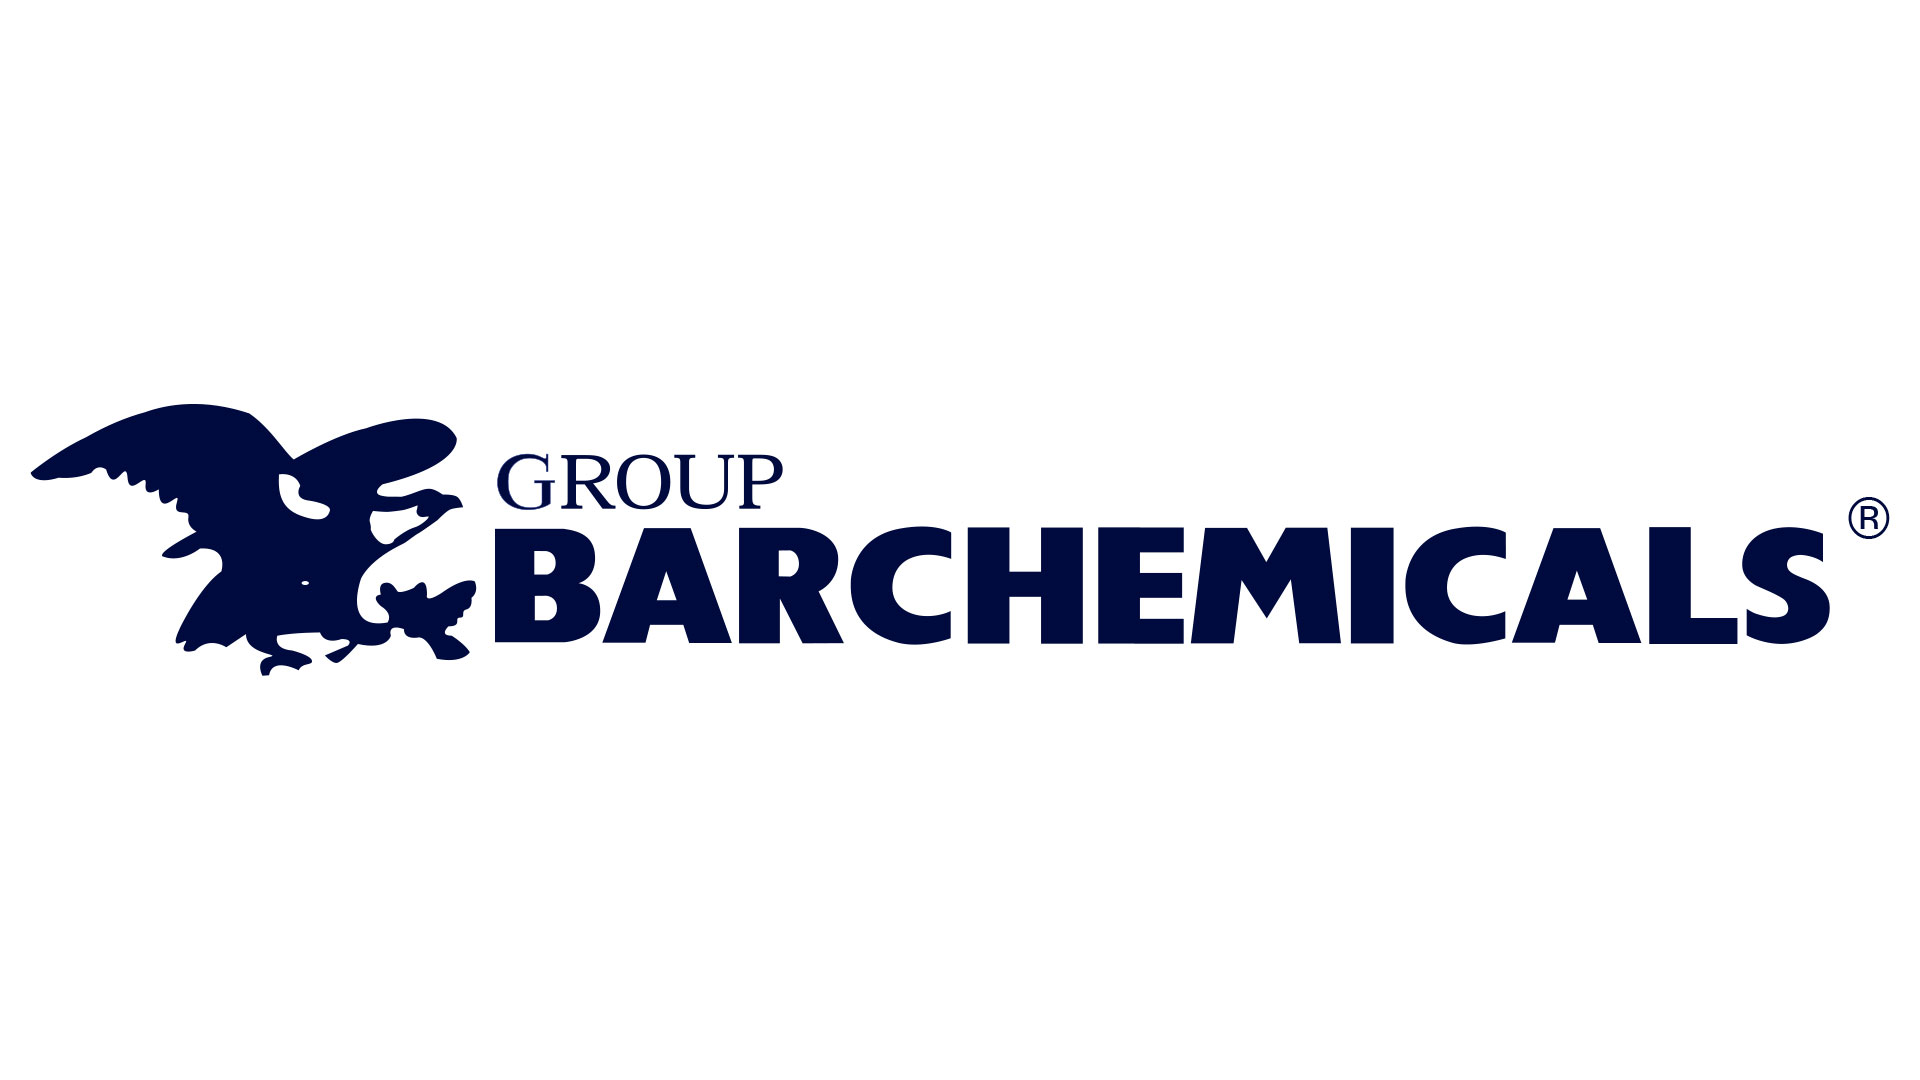 Group-Barchemicals